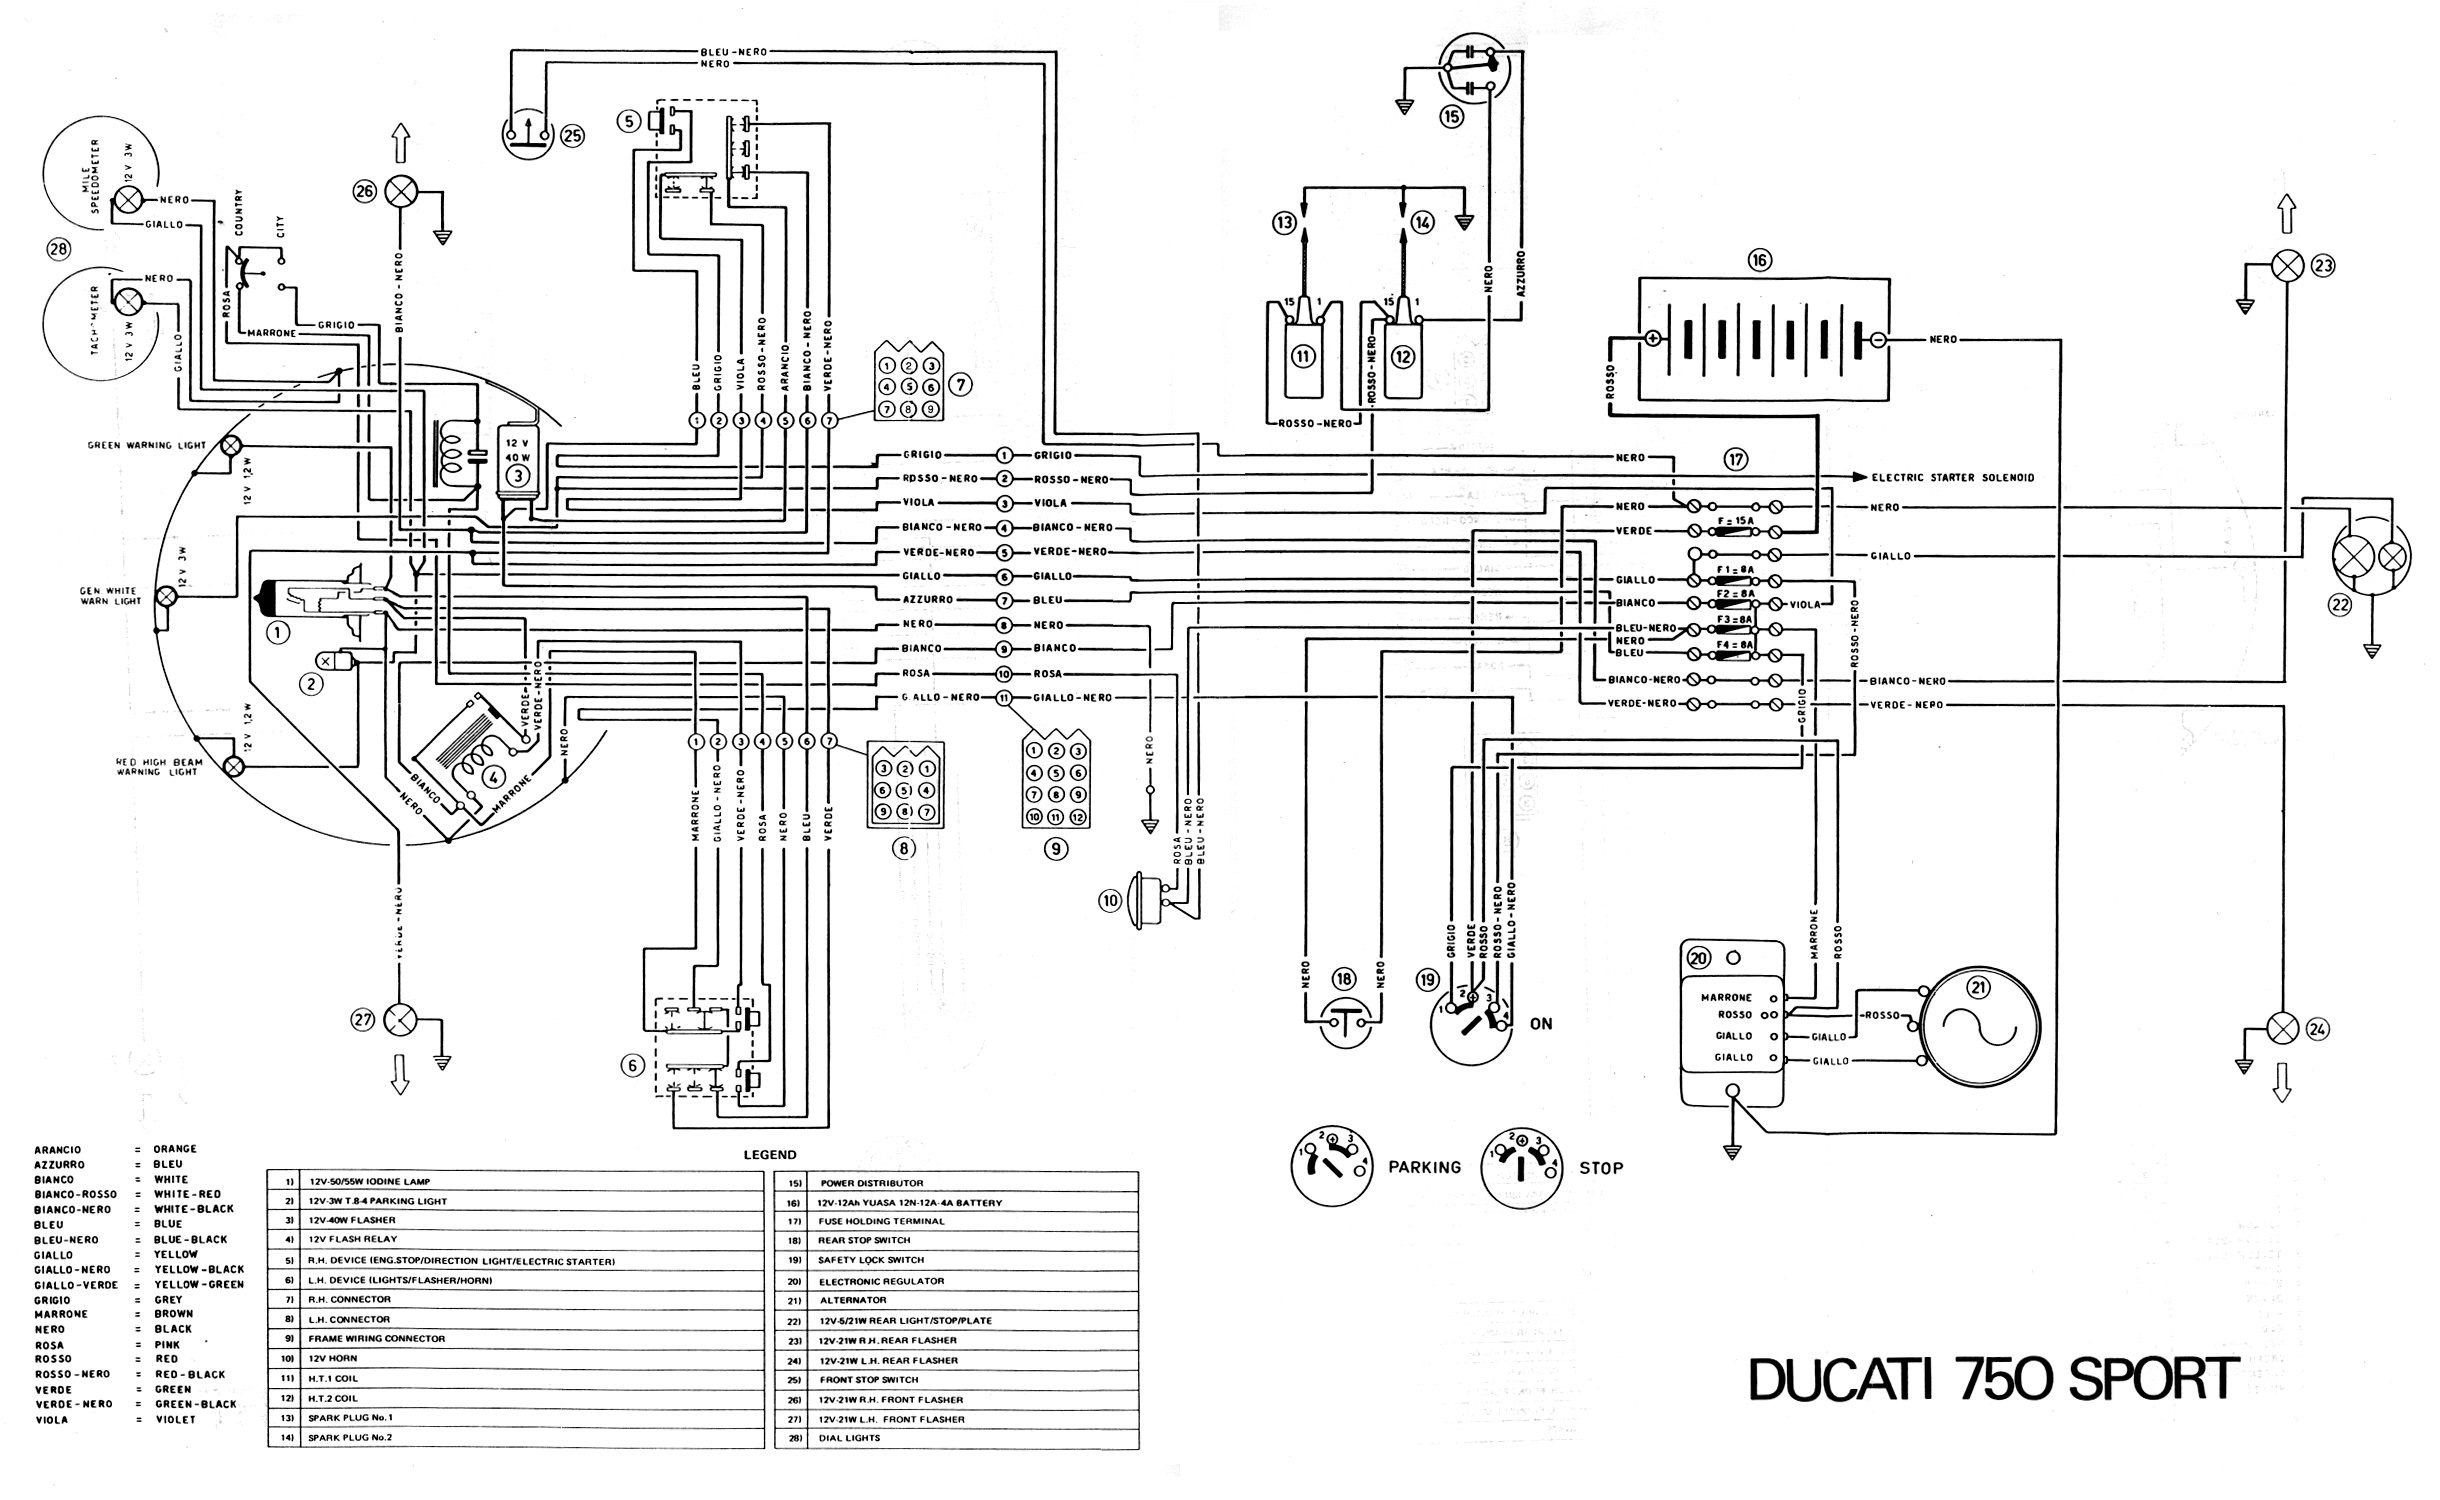 Kubota 5030 Wiring Diagram